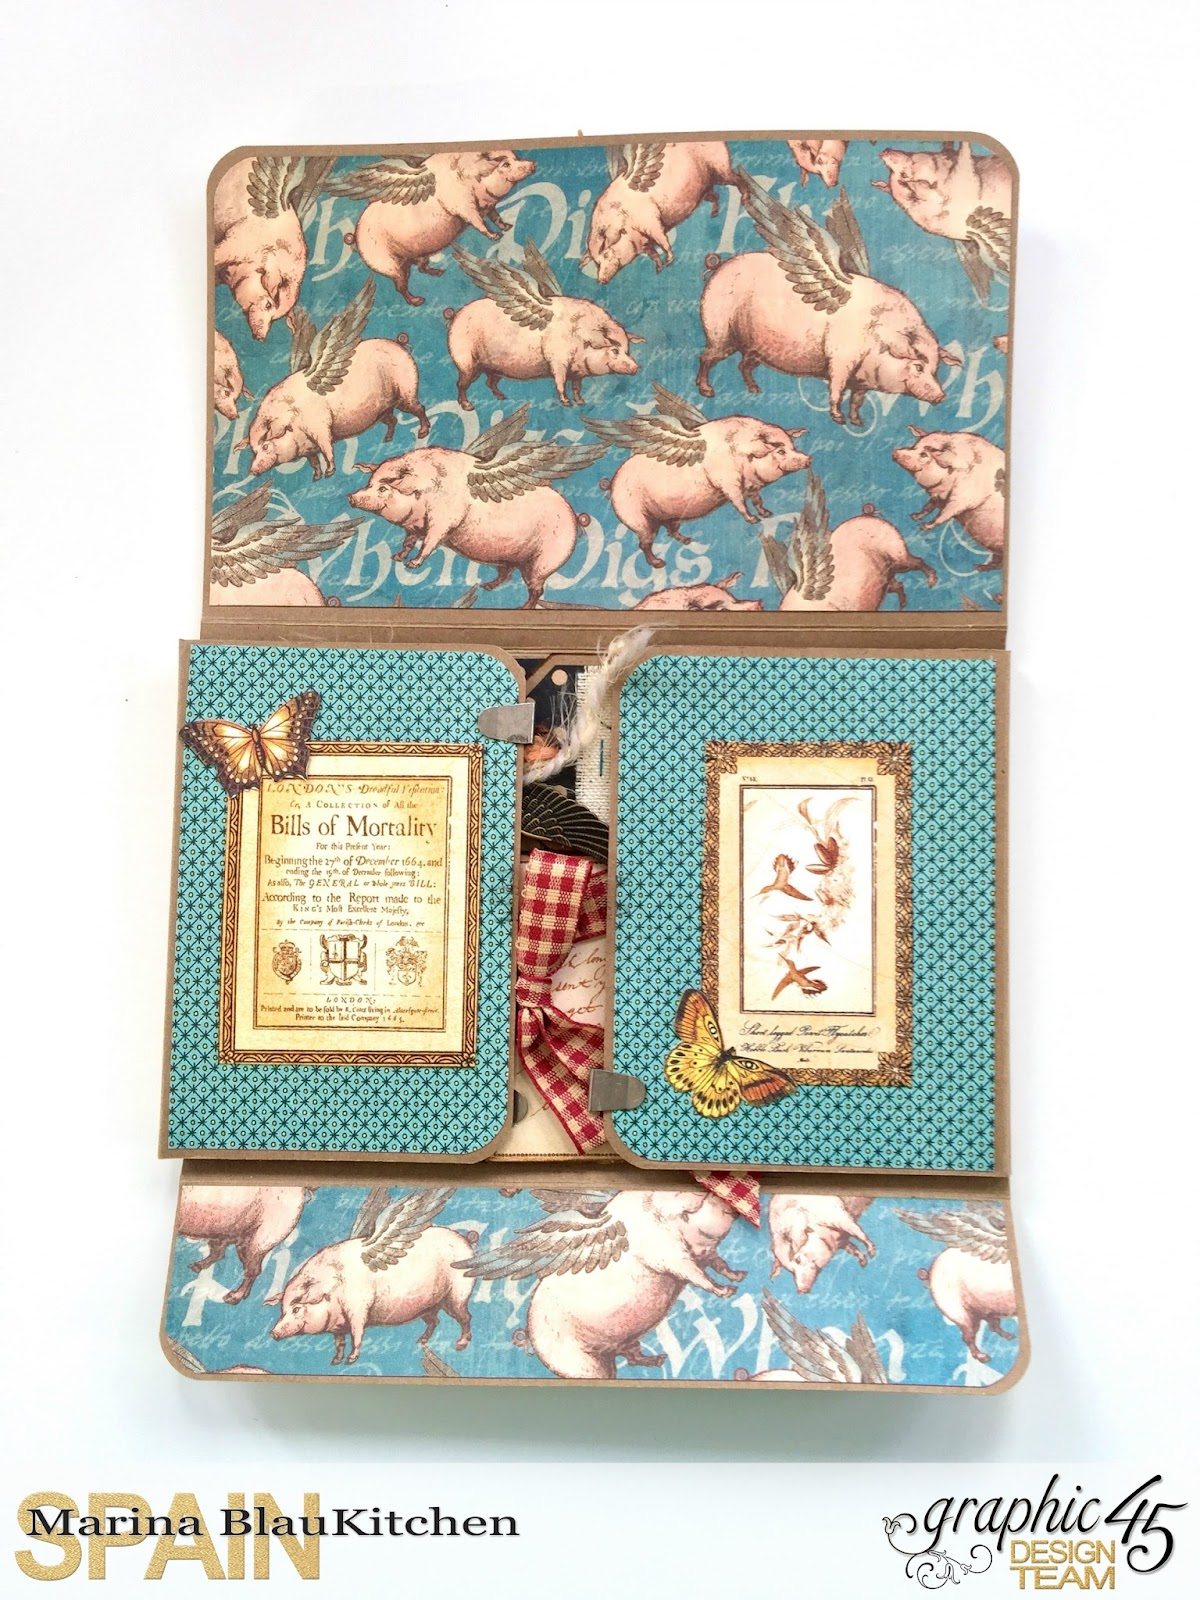 Olde Curiosity Shoppe Flip Flap Mini Album by Marina Blaukitchen Product by Graphic 45 photo 4.jpg